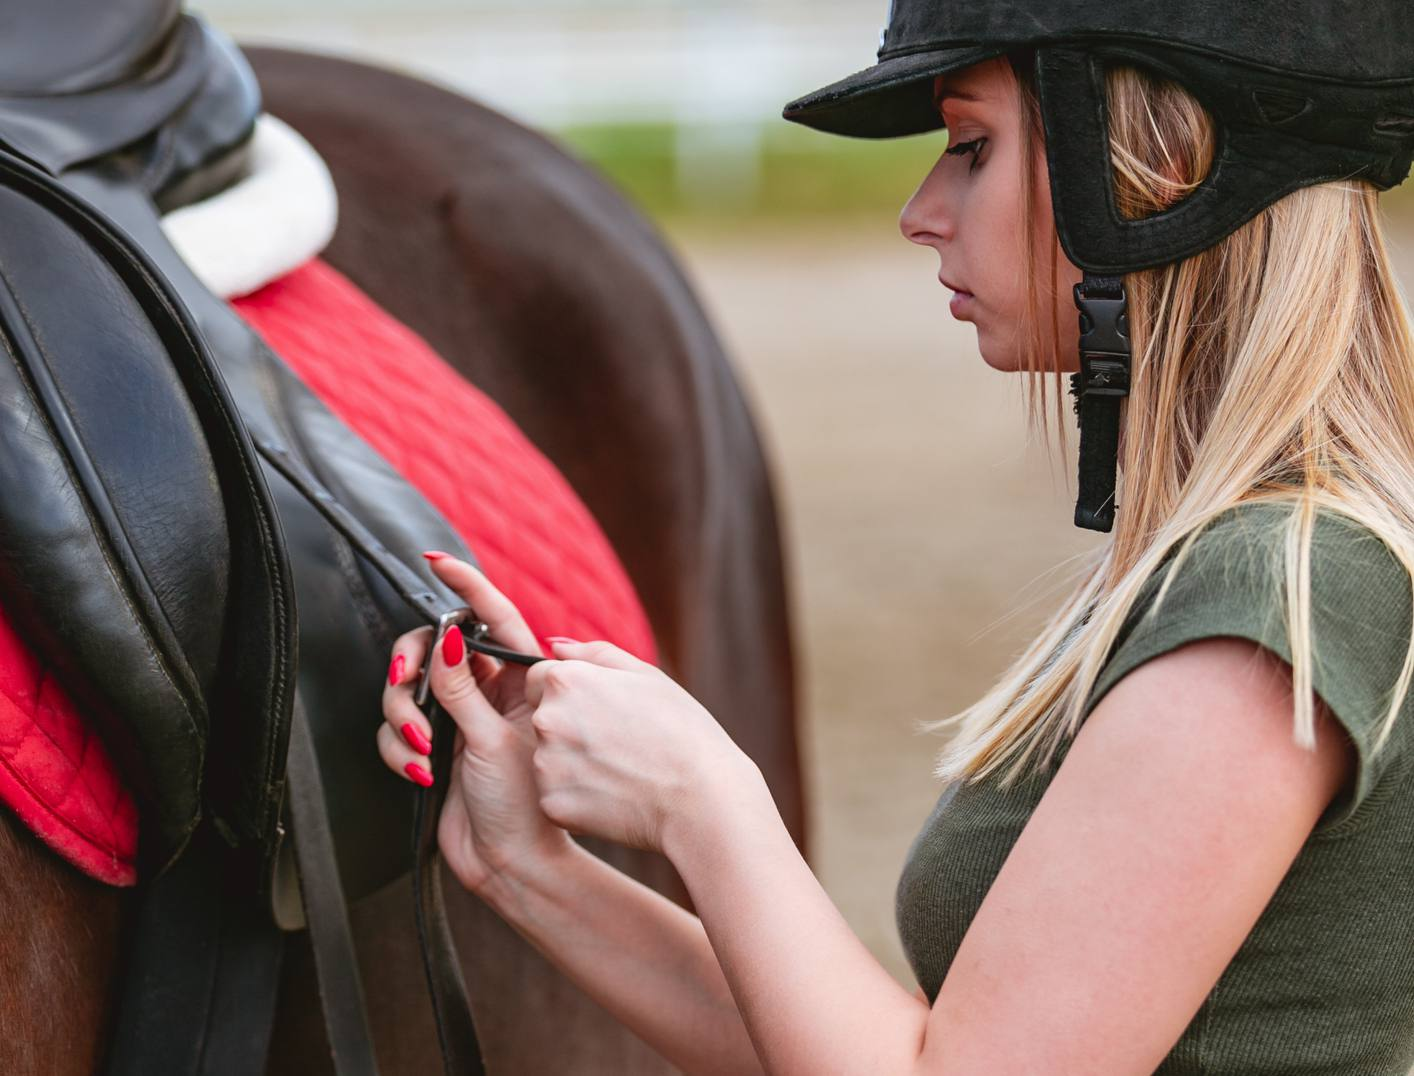 Woman cinching strap on saddle of horse